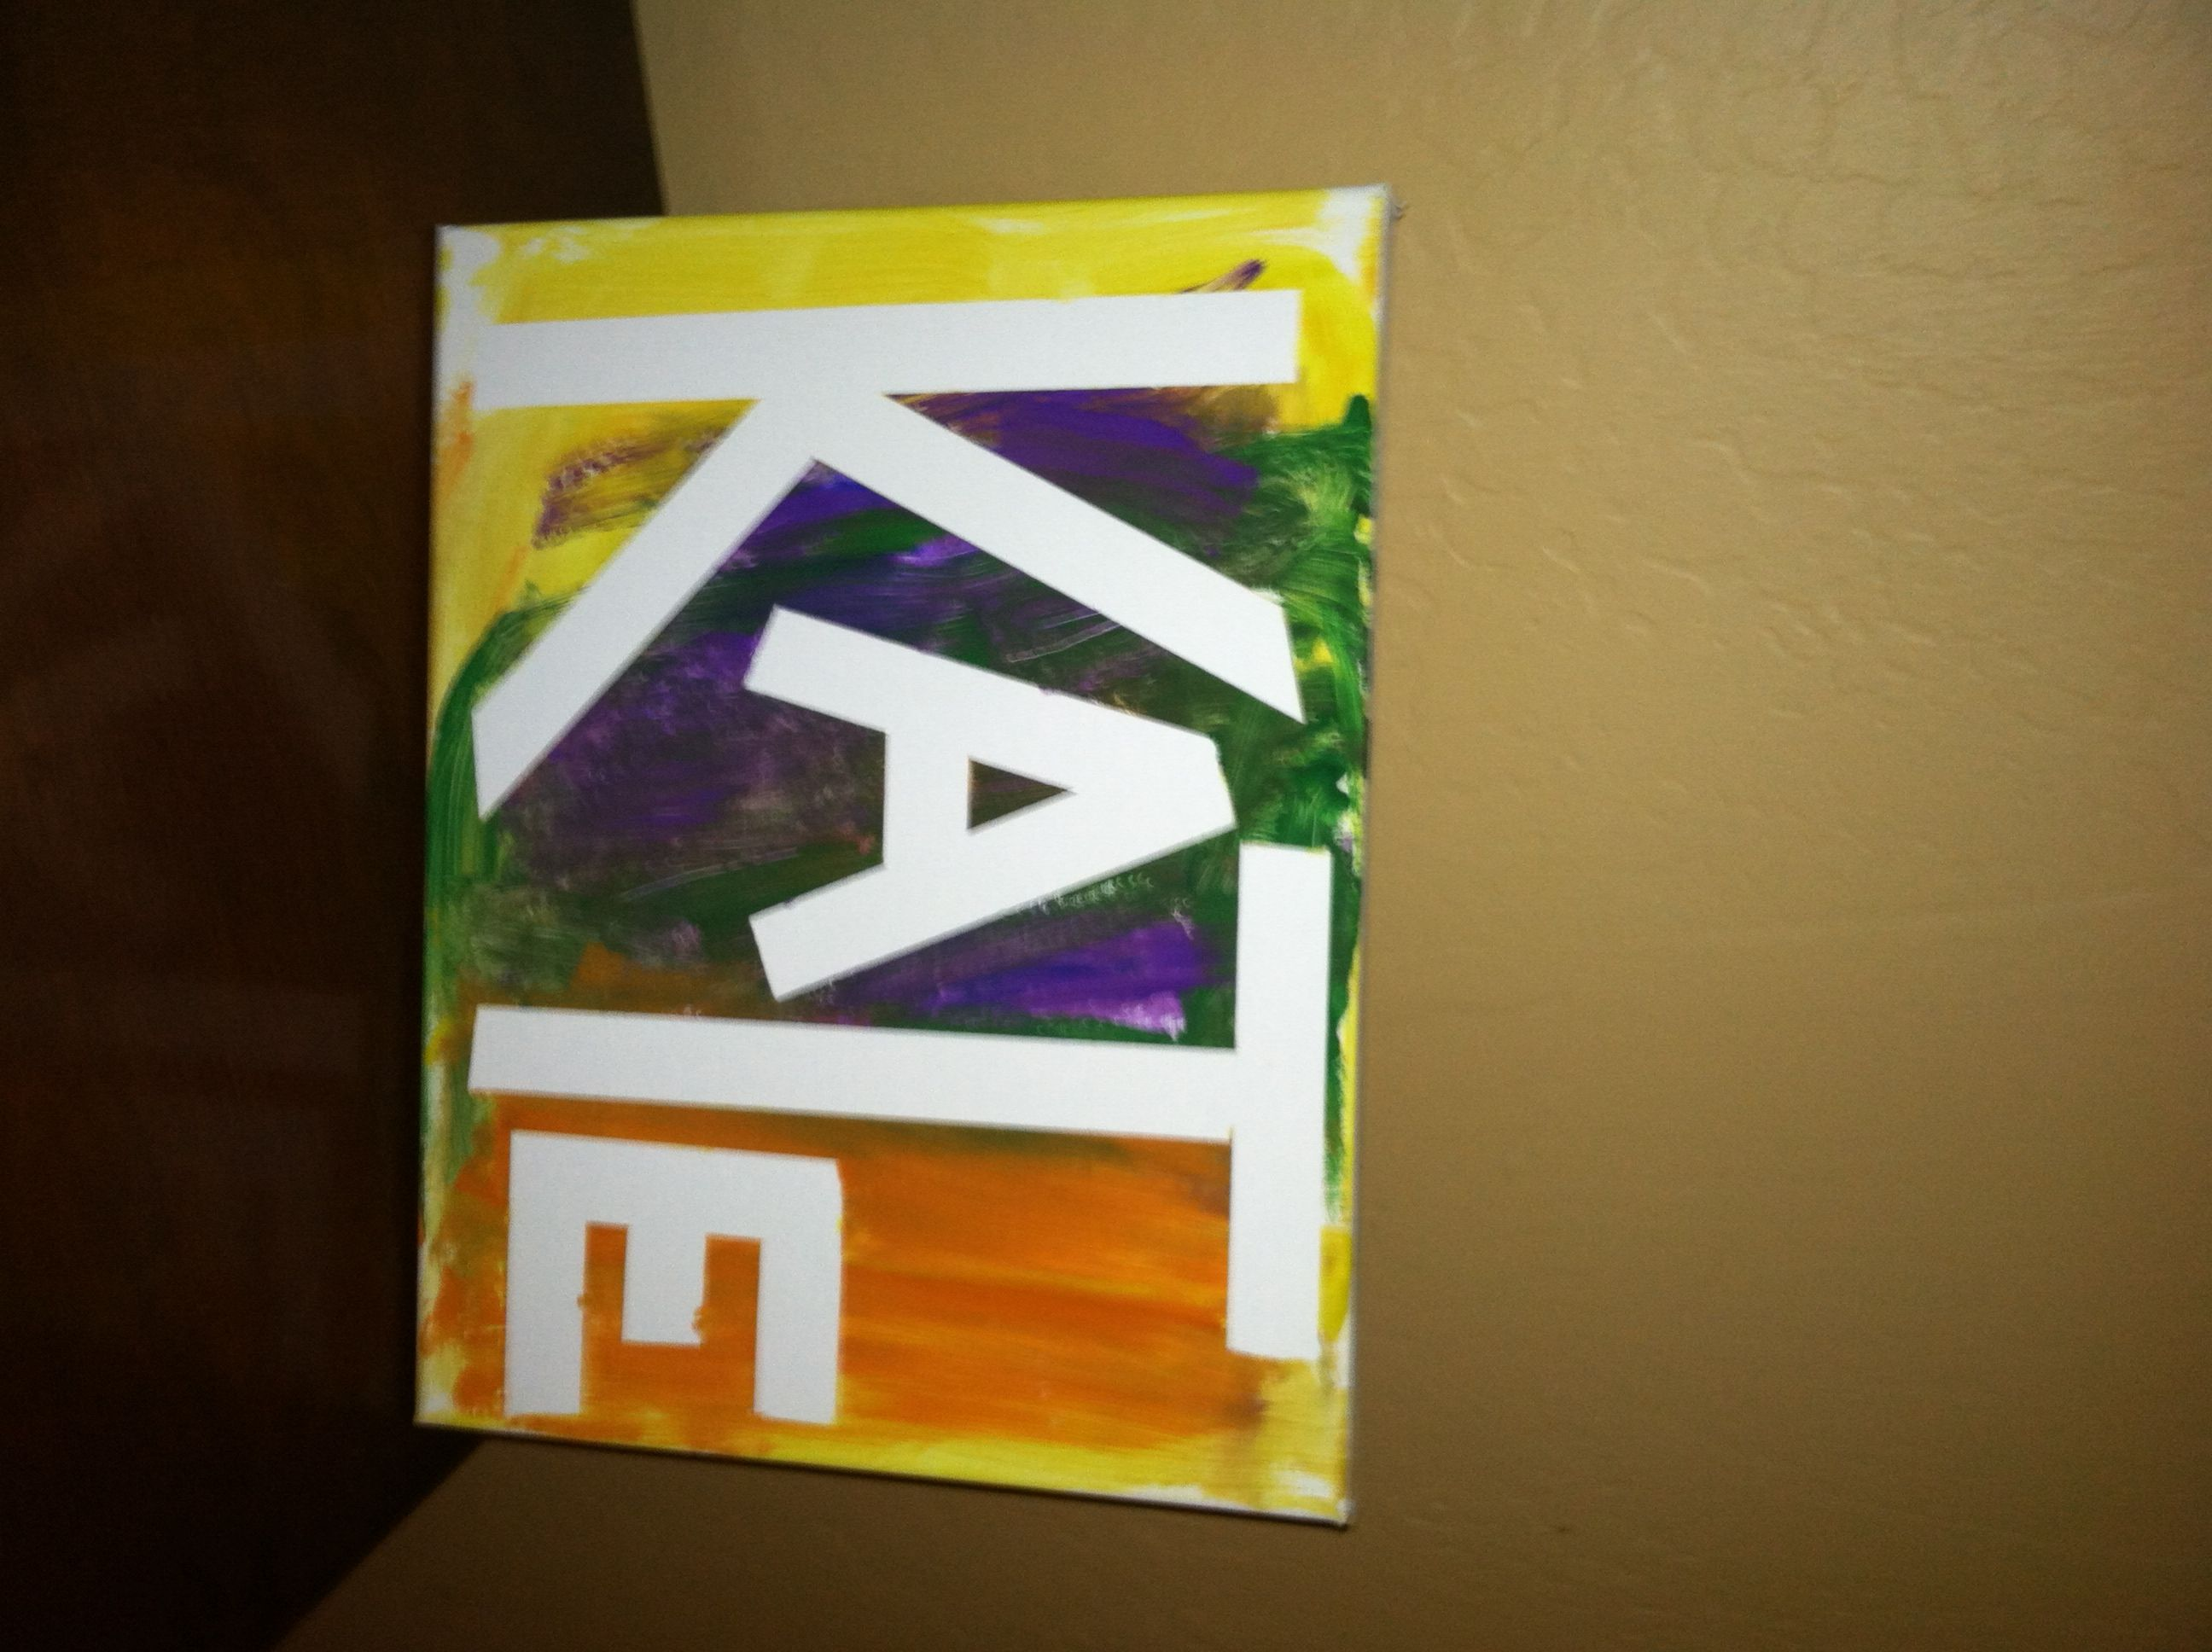 Pin By Rachel Williamson On Actually Tried This And My Comments Kids Canvas Art Babysitting Crafts Masking Tape Art